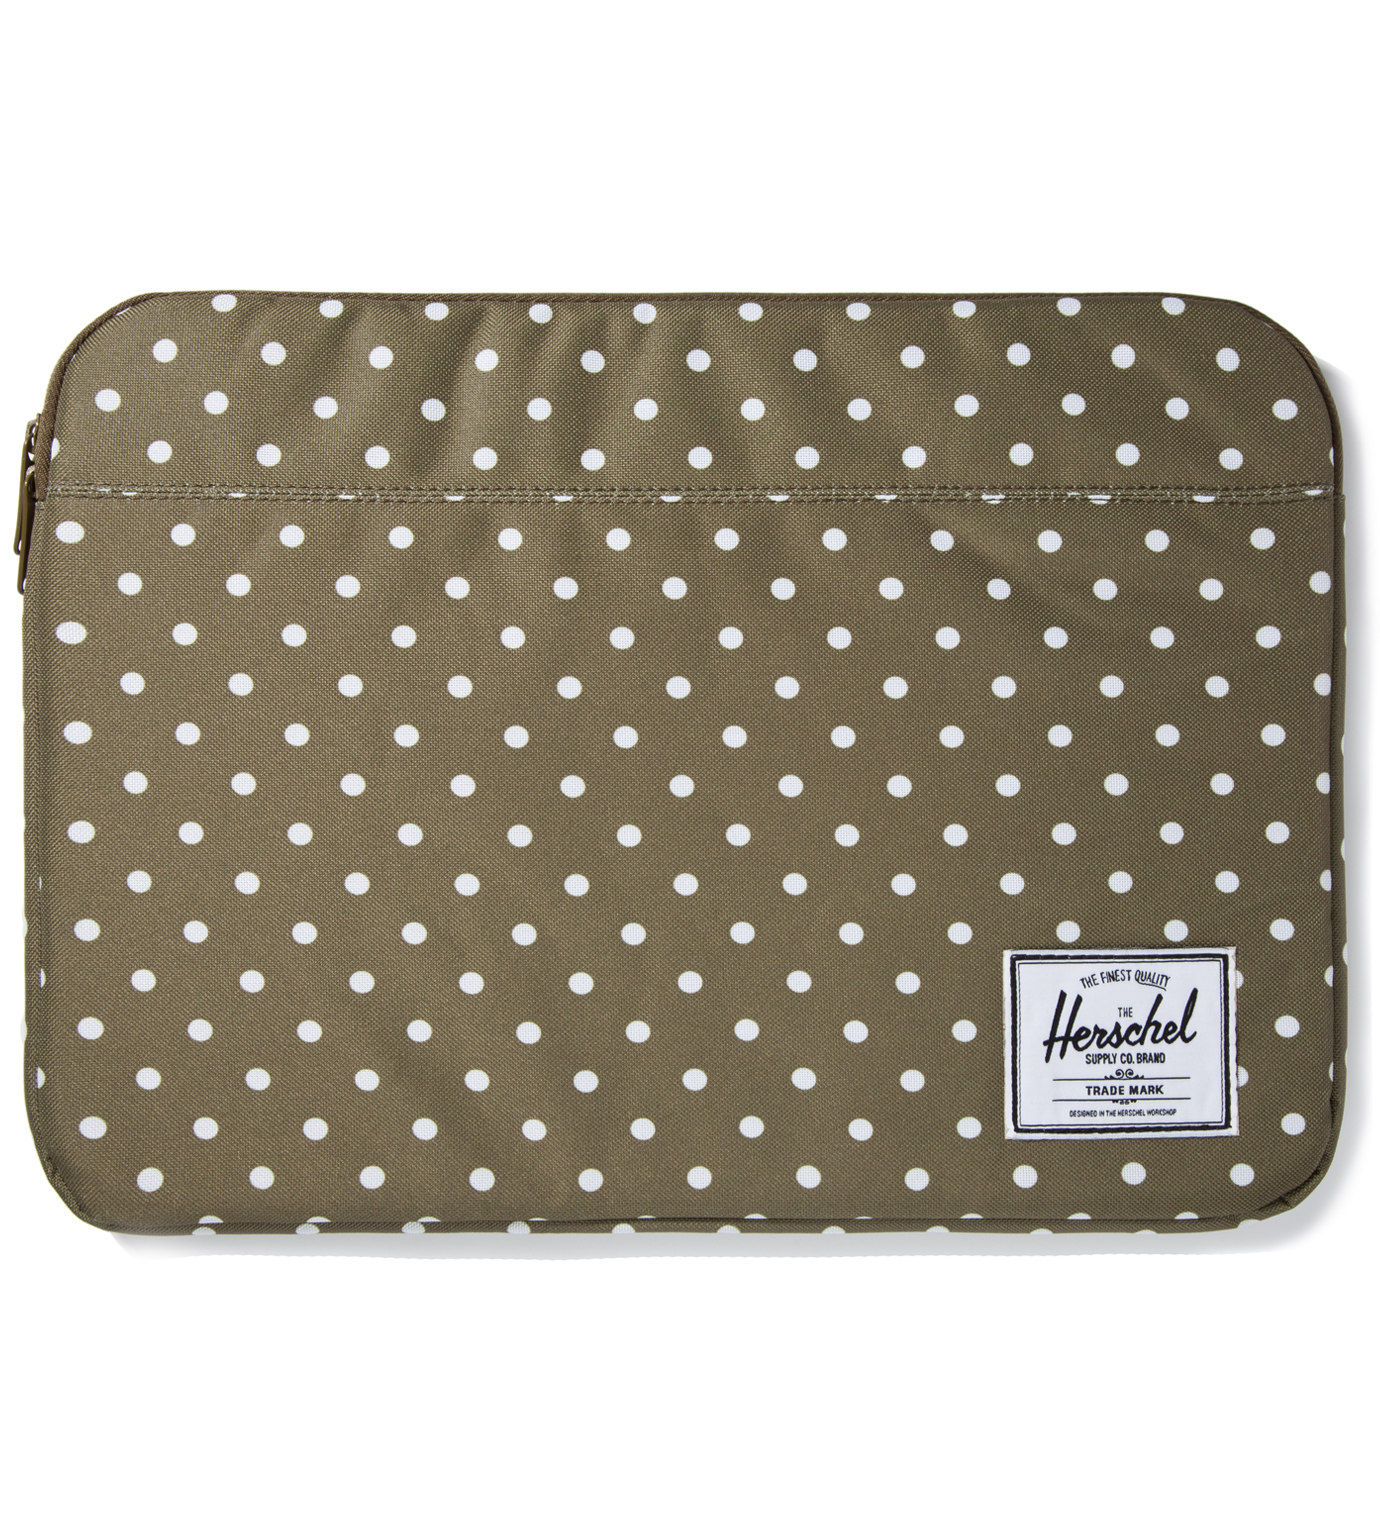 "Herschel Supply Co. Olive Polka Dot Anchor Sleeve for 15"" Macbook Pro"